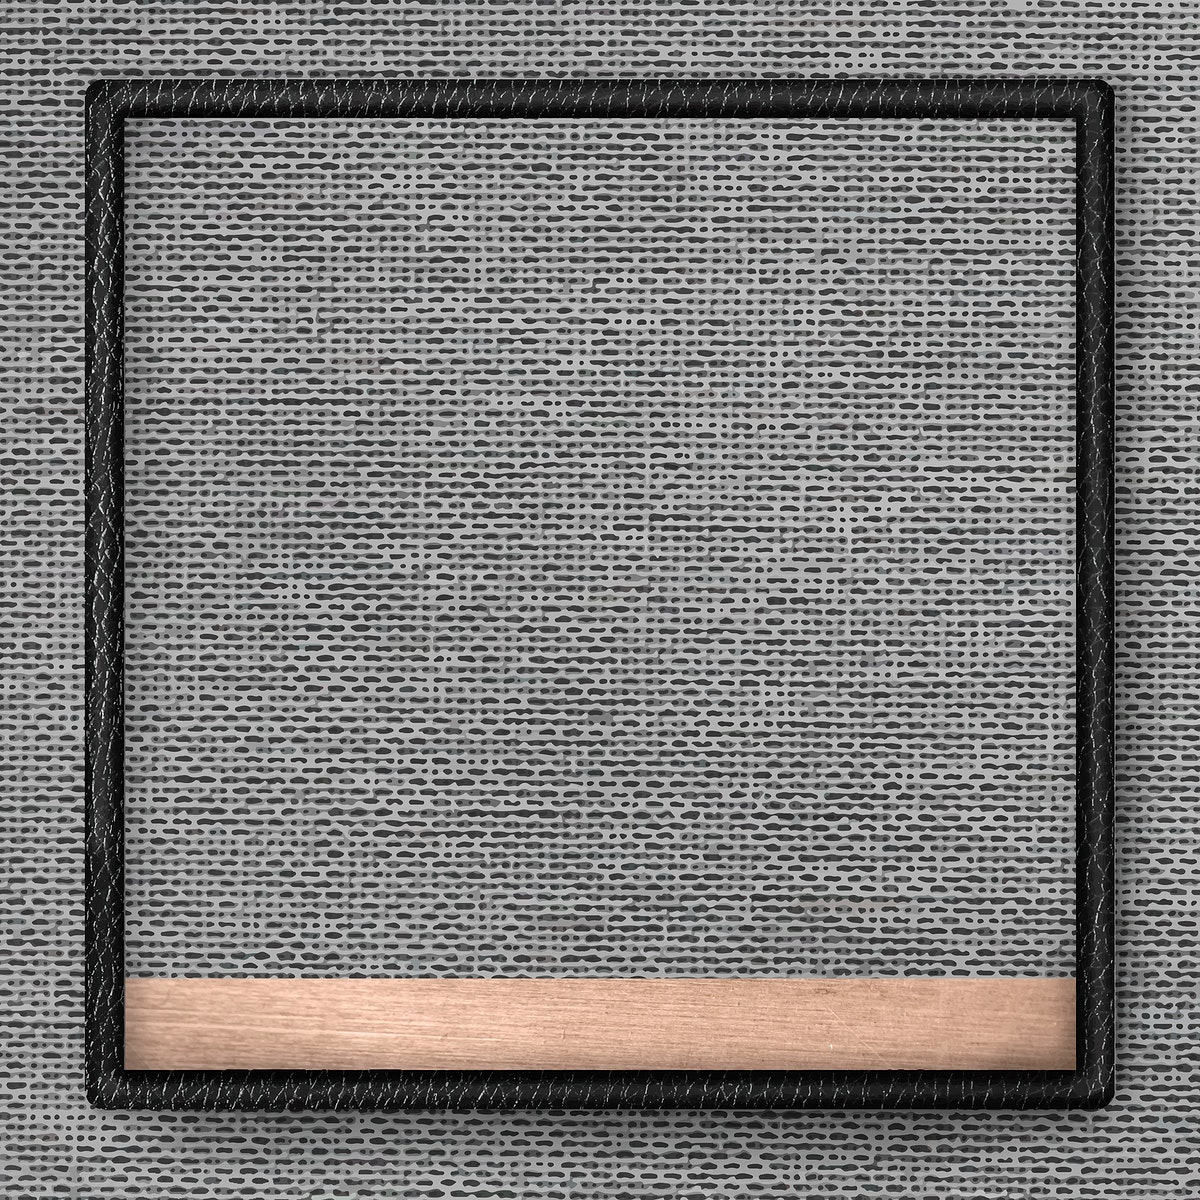 Black leather frame on gray fabric texture background vector